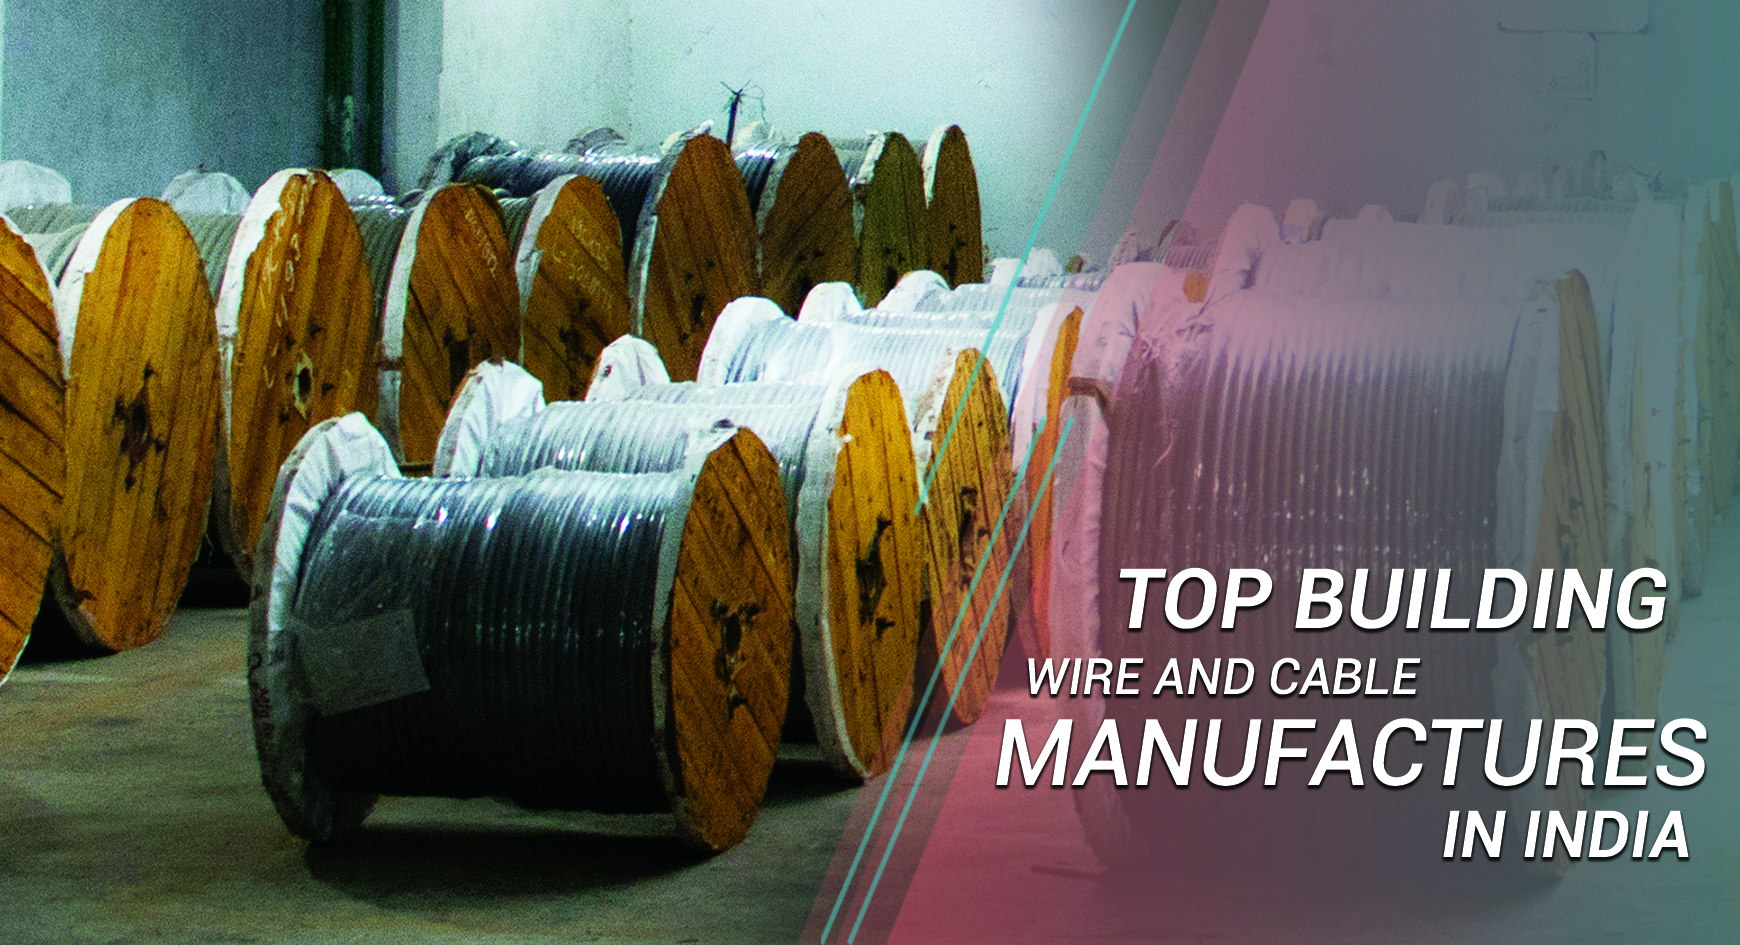 Top Building Wire and Cable Manufacturers in India?